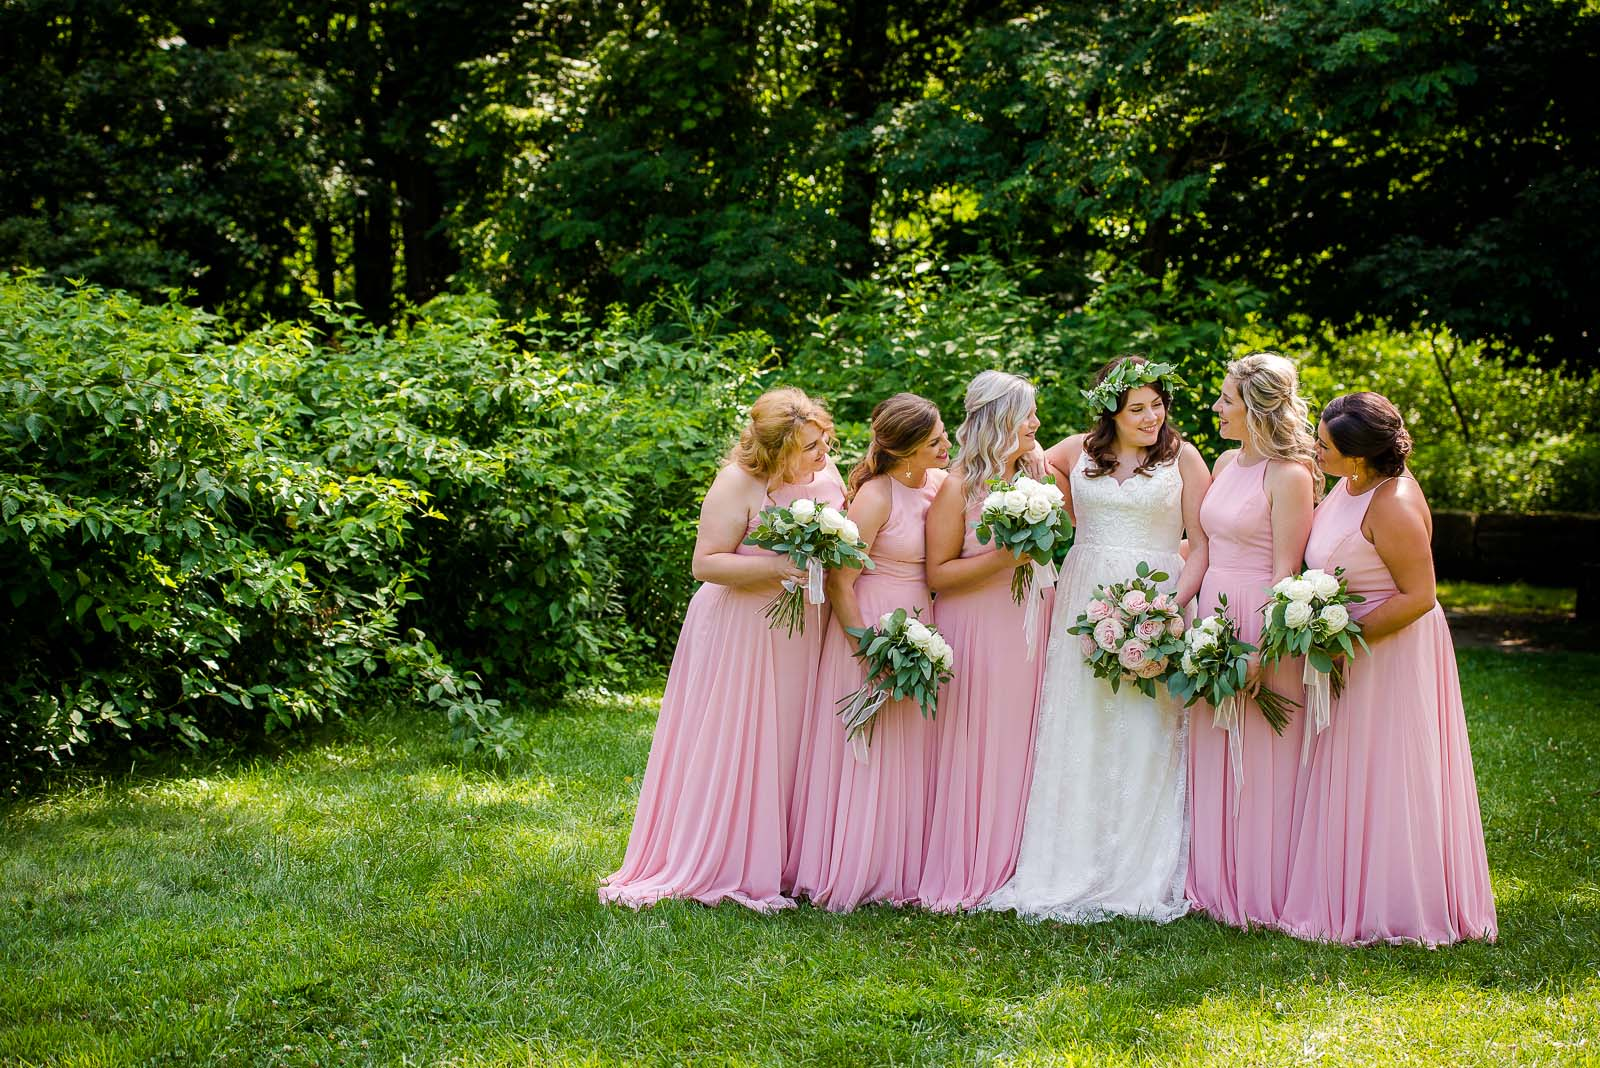 Eric_and_Christy_Photography_Blog_Wedding_Keara&Andy-25